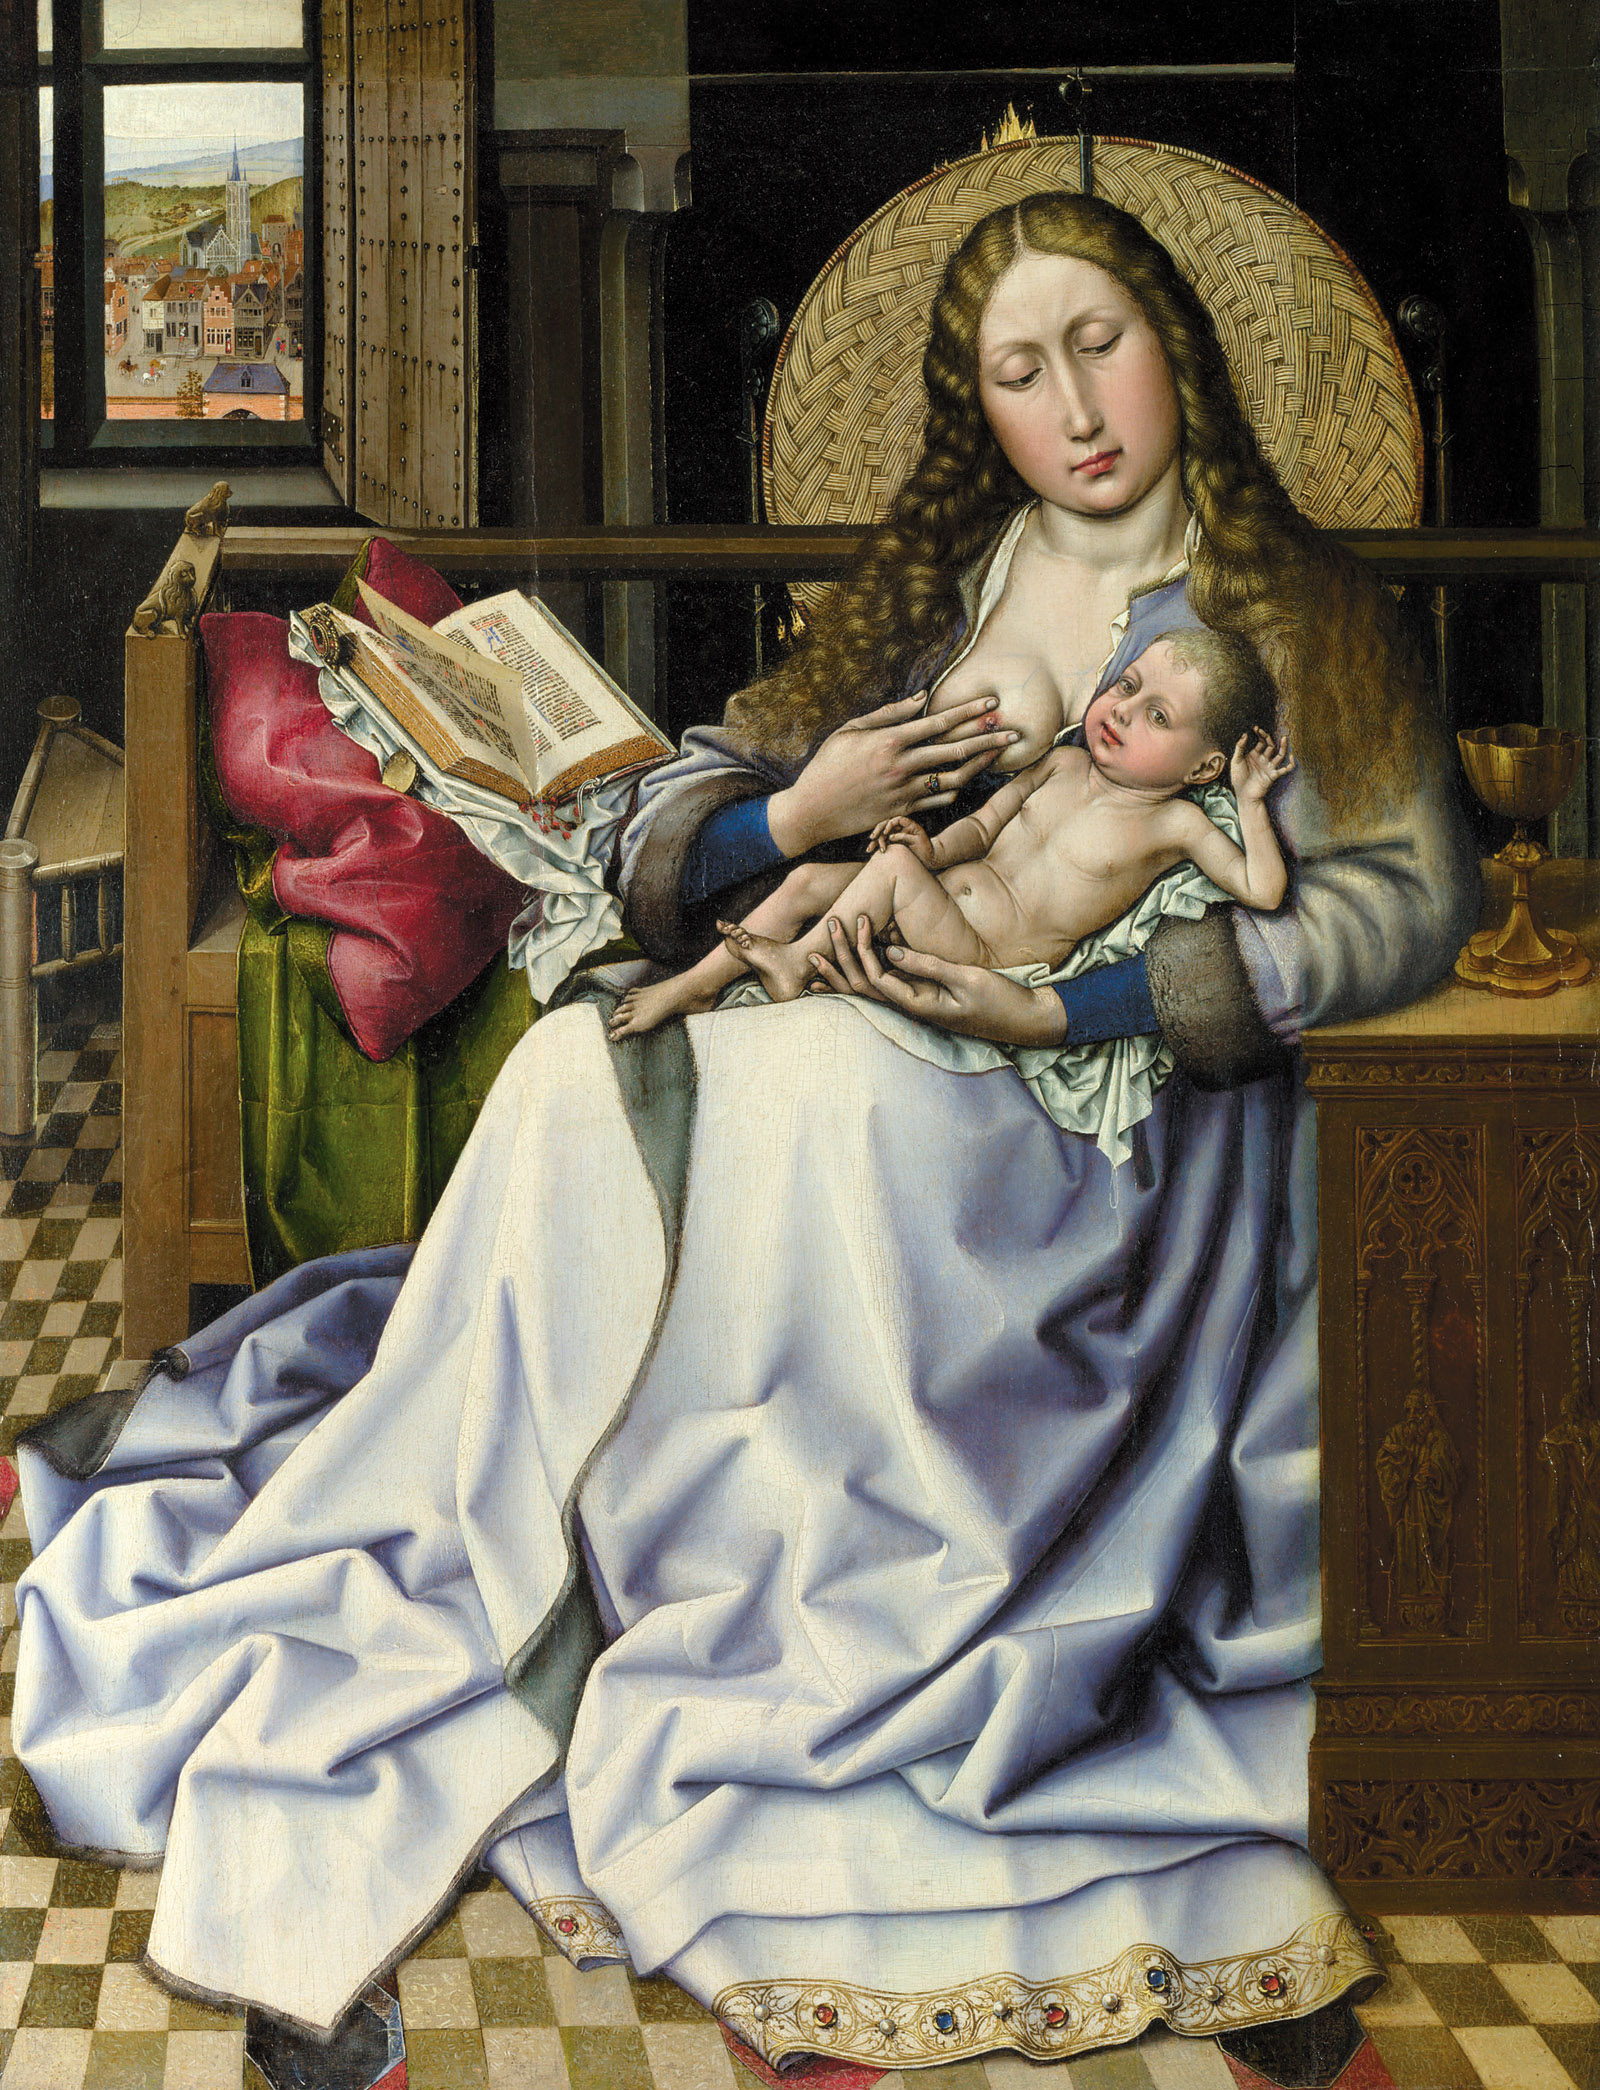 Robert Campin's painting, The Virgin and Child Before a Firescreen, circa 1440